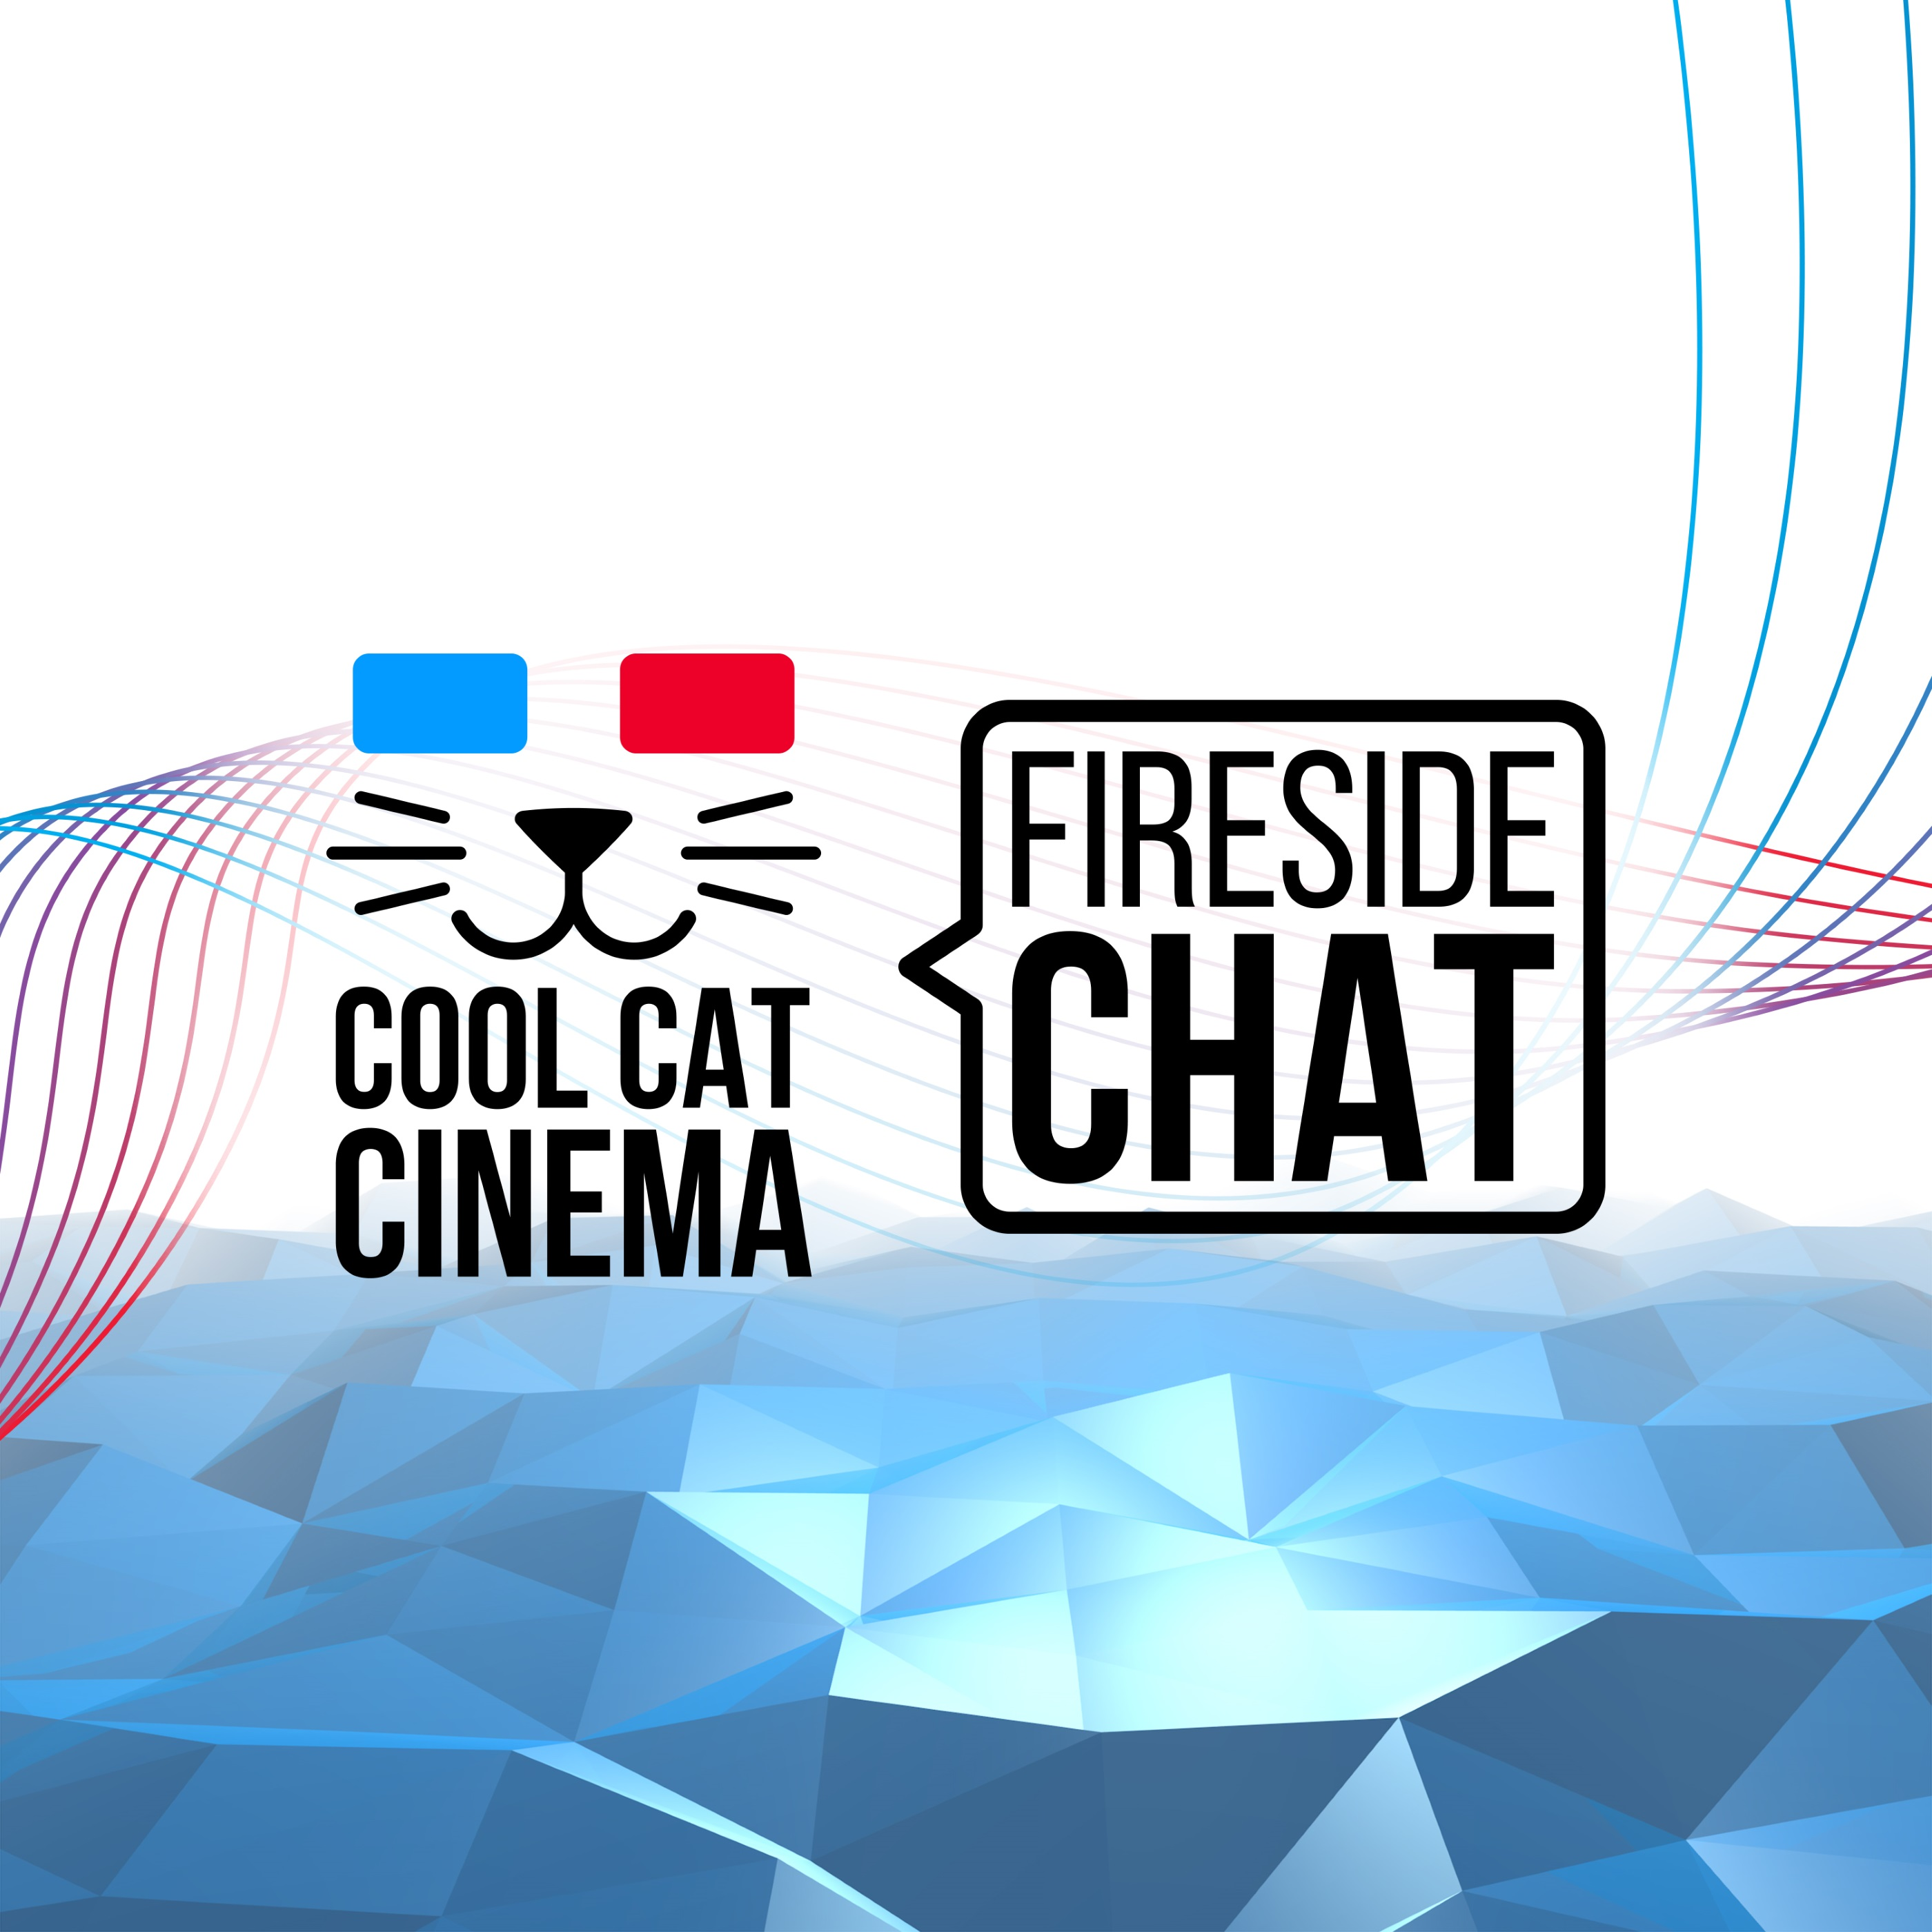 Cool Cat Cinema Fireside Chat